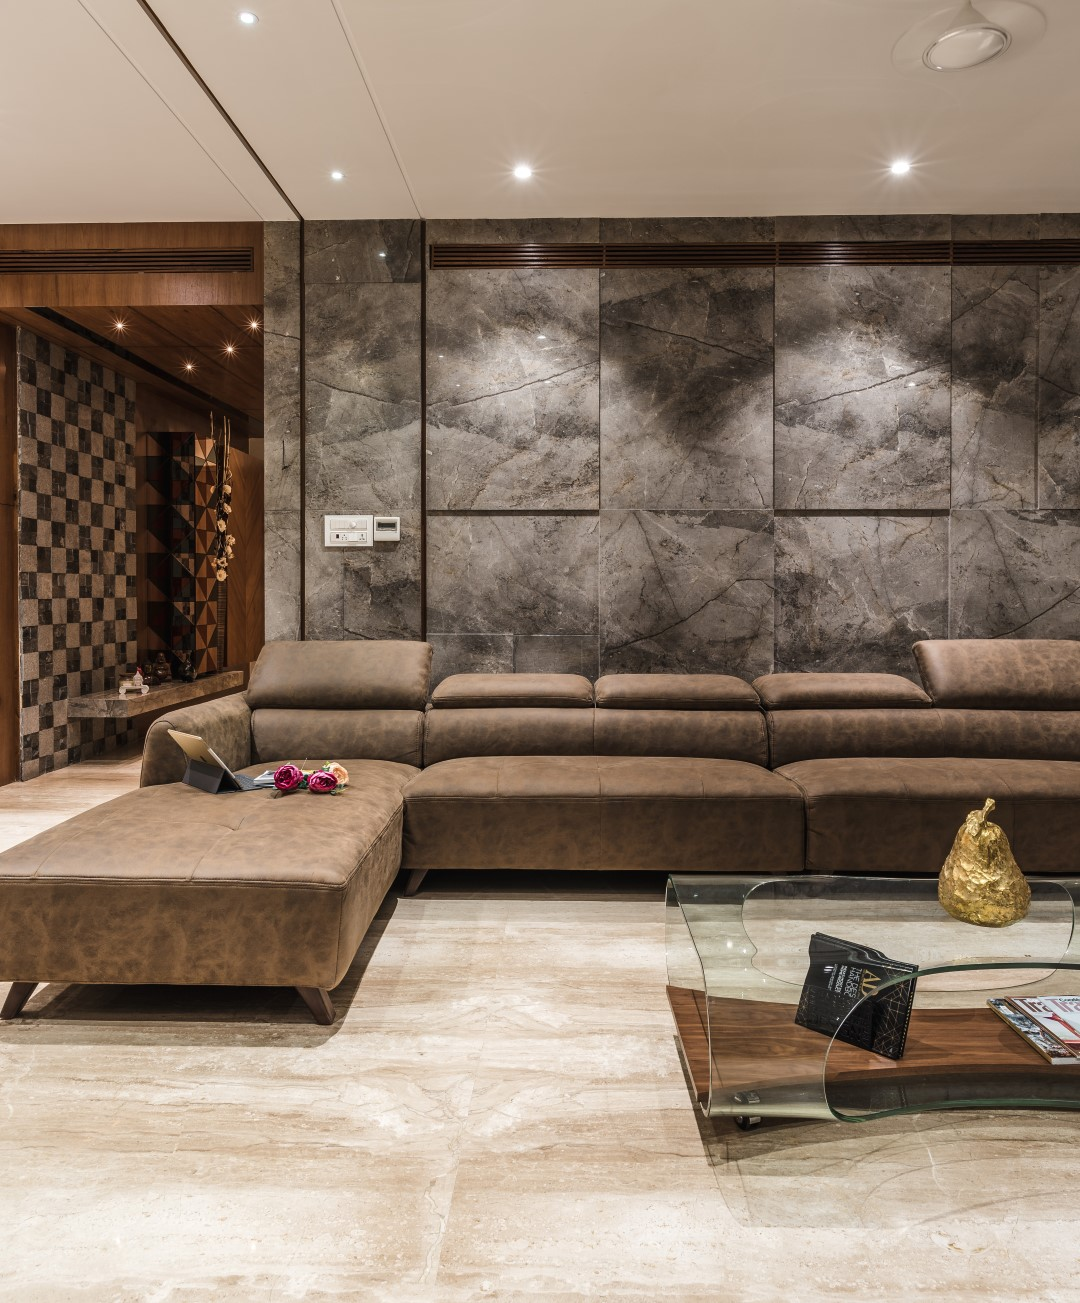 A Stylish And Urban Apartment Designed By DESIGN SCOPE